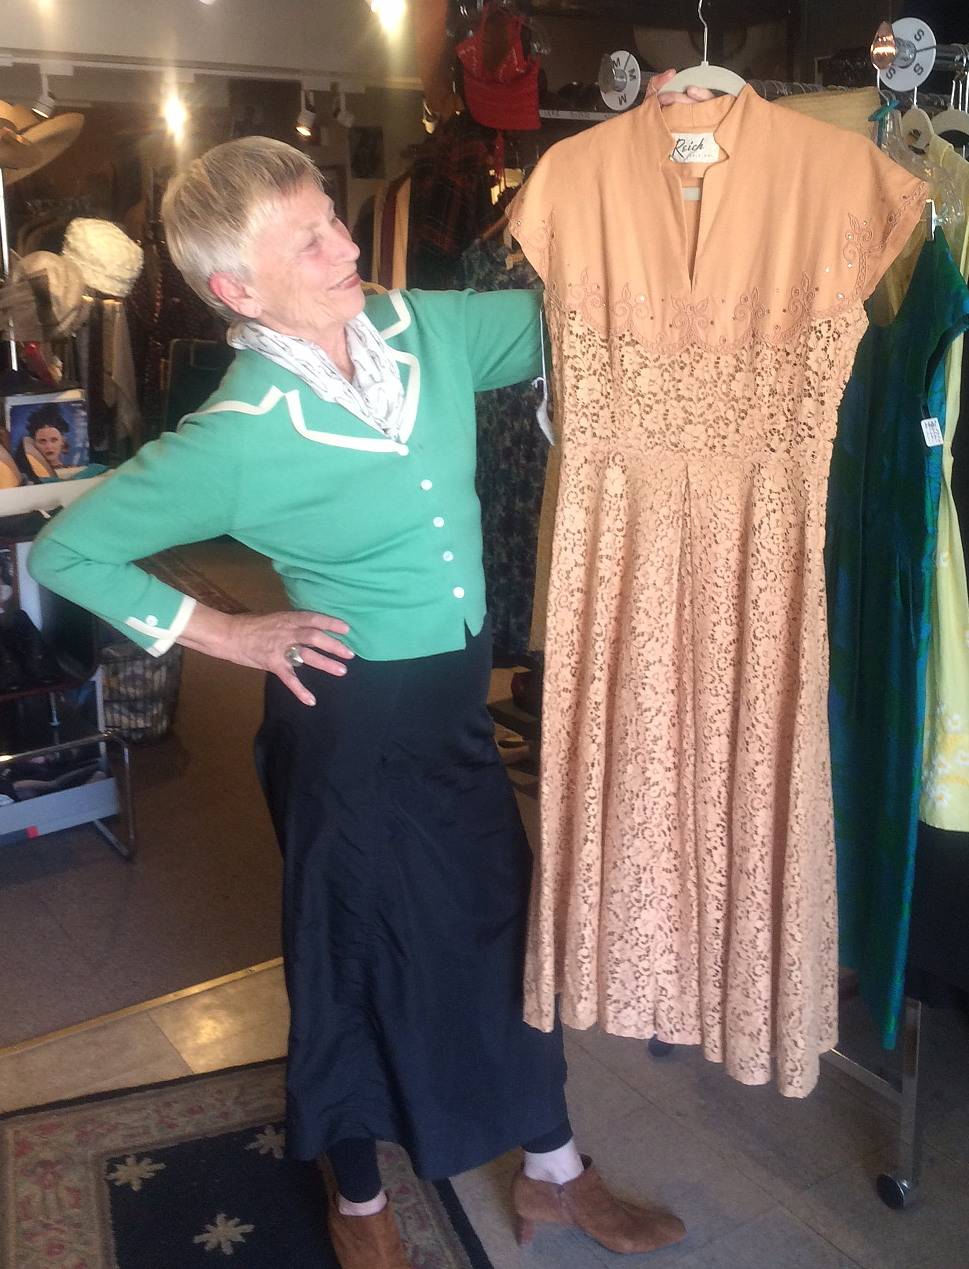 The Hudson Area Library is hosting a Mother's Day Fashion Show & Tea on Sunday, May 8th beginning at 2pm. Featured clothing is from the vintage shop, Discipline Park. Models are from the community and include Mothers and daughters. Space is limited. For tickets, go to www.HudsonAreaLibrary.org.